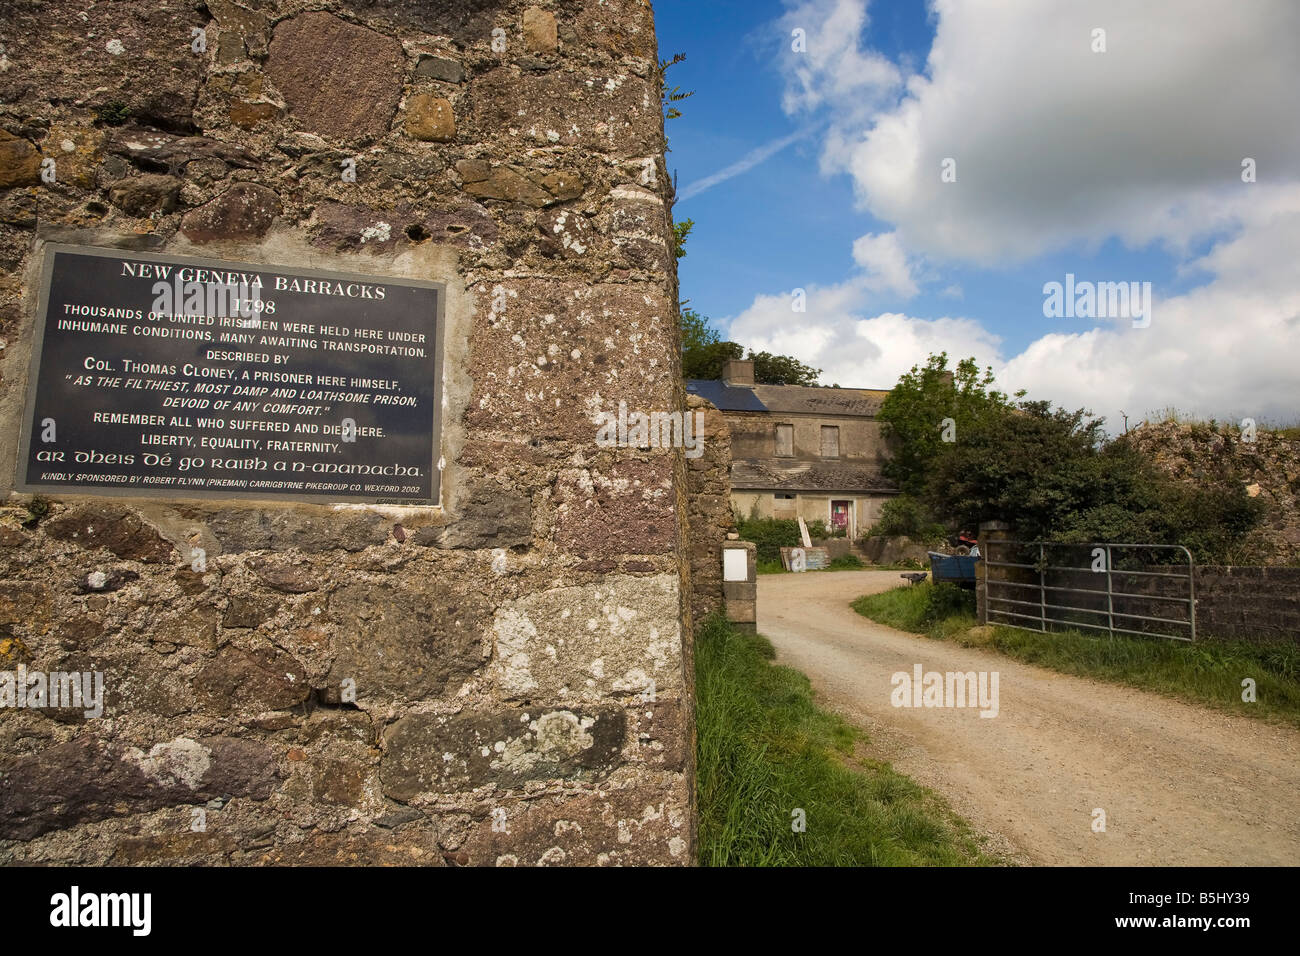 Plaque commemorating the 1798 Uprising, The Geneva BarracksTransportation Centre, Crook, County Waterford, Ireland - Stock Image